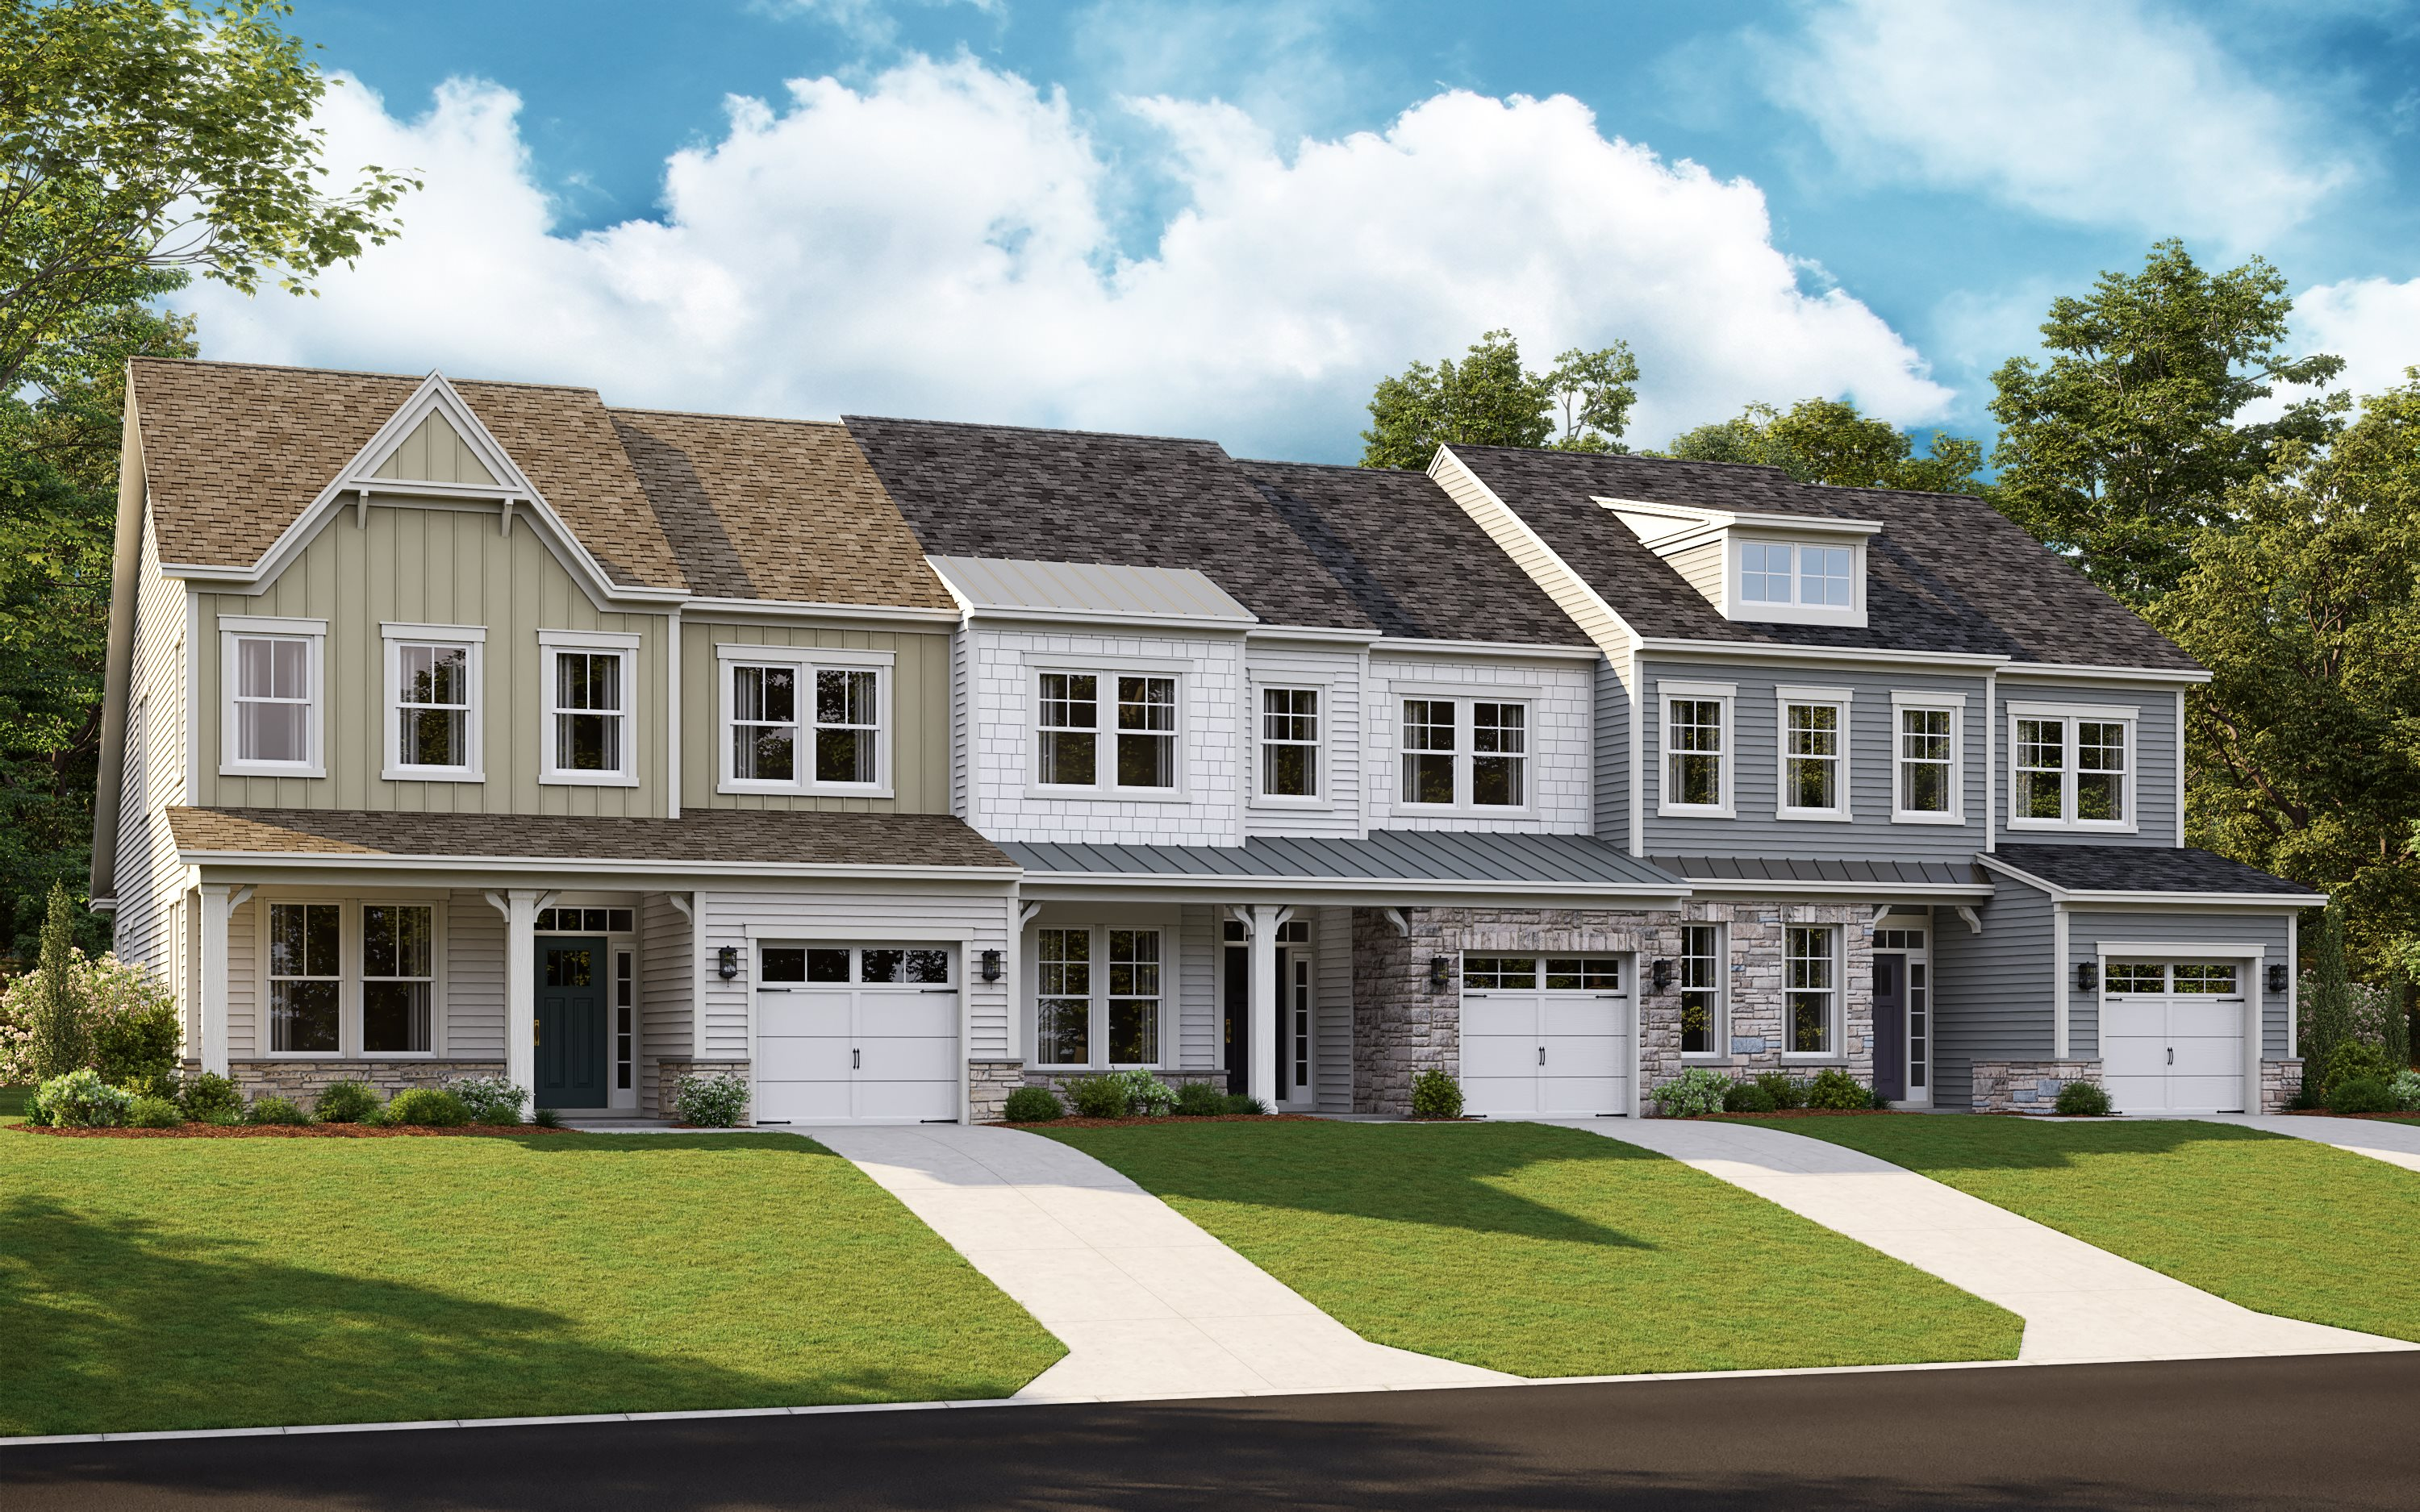 Row of townhomes in the Jennings plan at Amblebrook